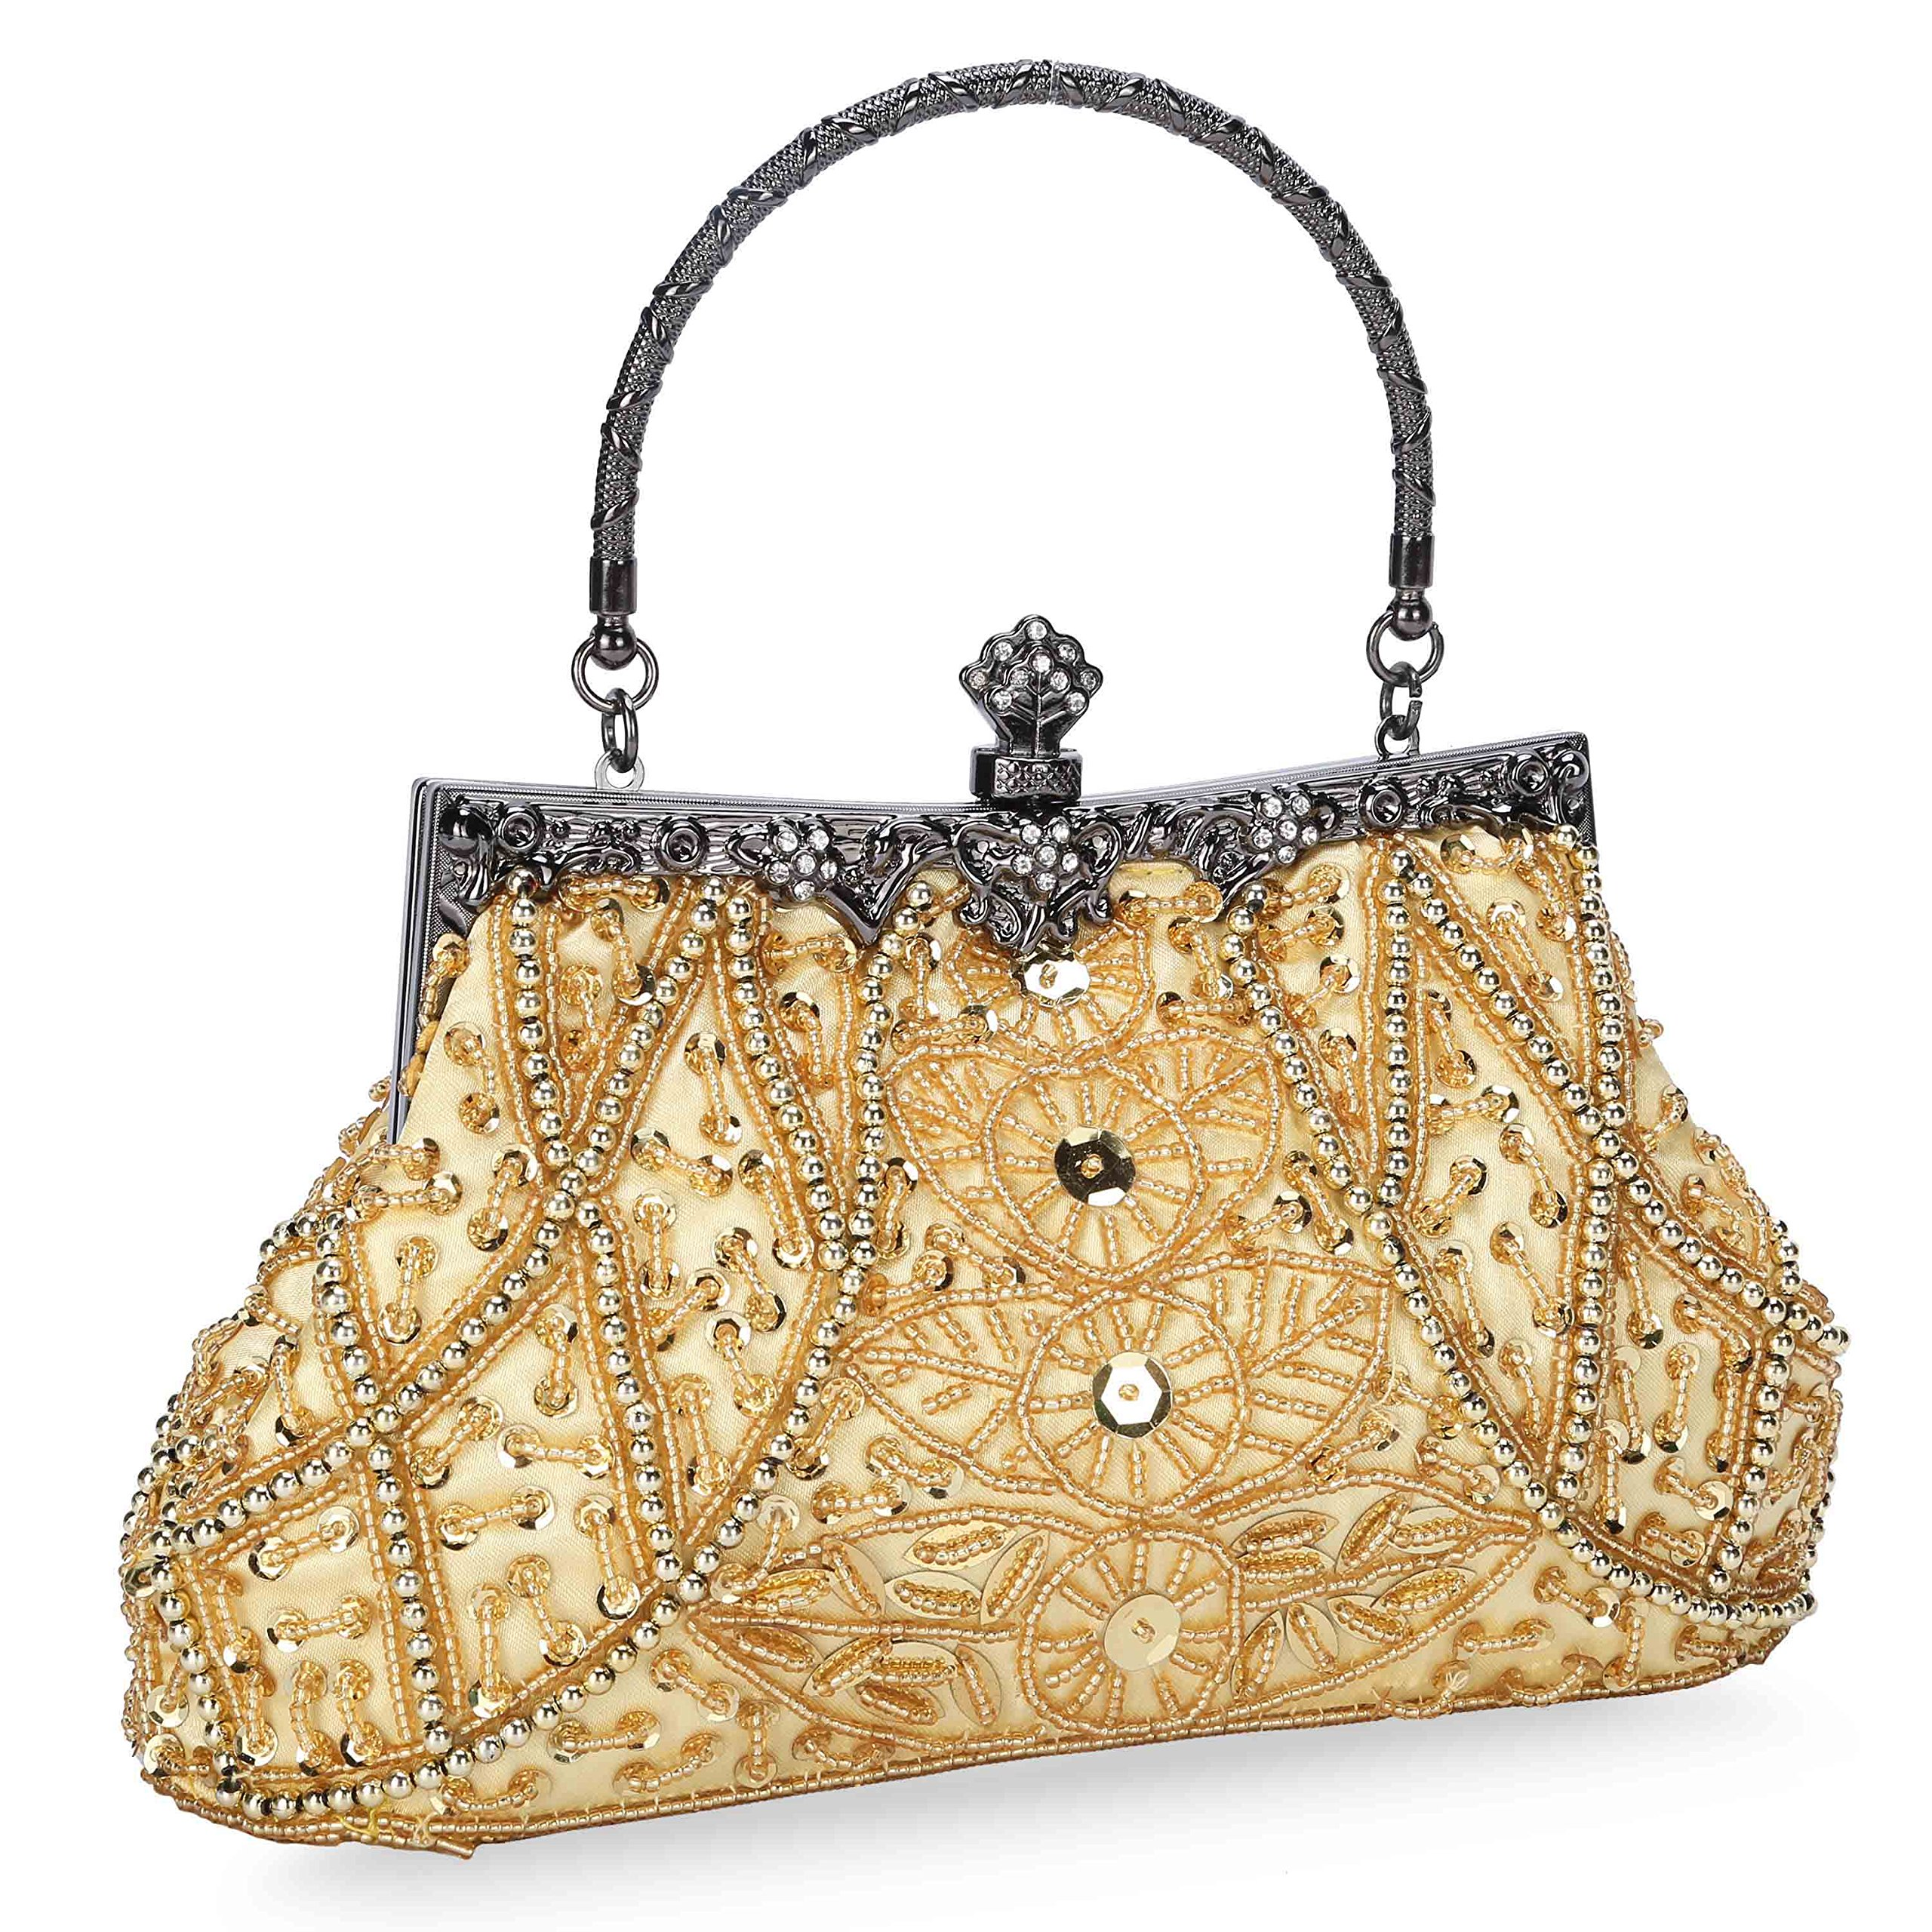 Chichitop Women's Vintage Beaded And Sequined Evening Bag Wedding Party Handbag Clutch Purse, Gold